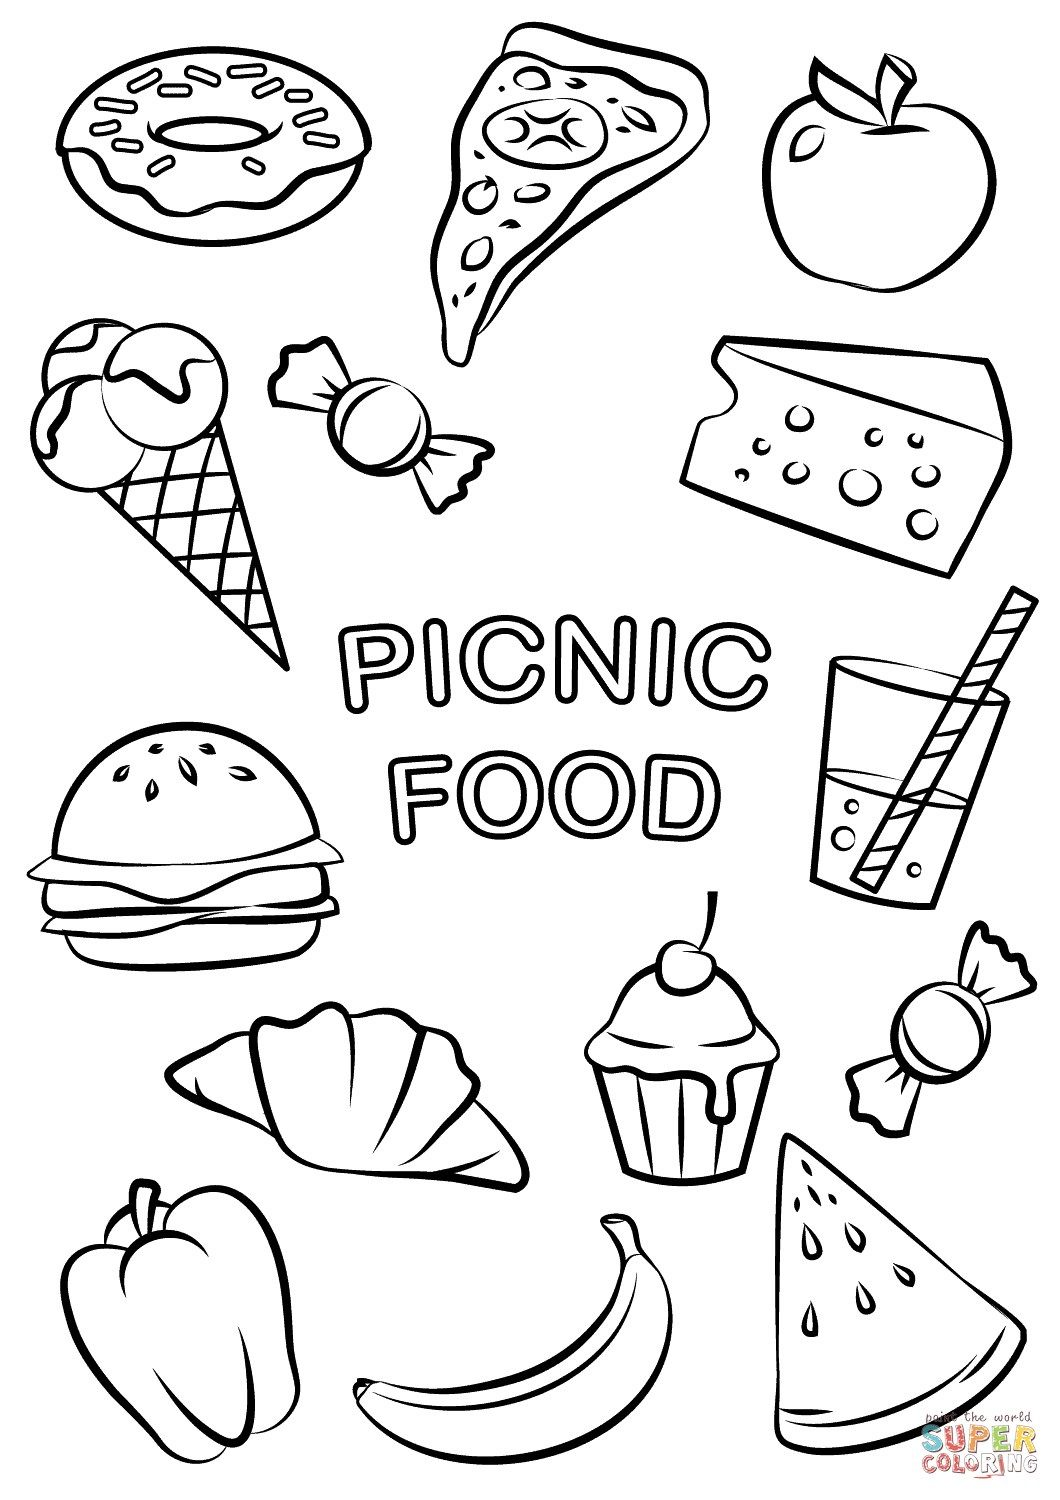 22 Excellent Image Of Food Coloring Pages Food Coloring Pages